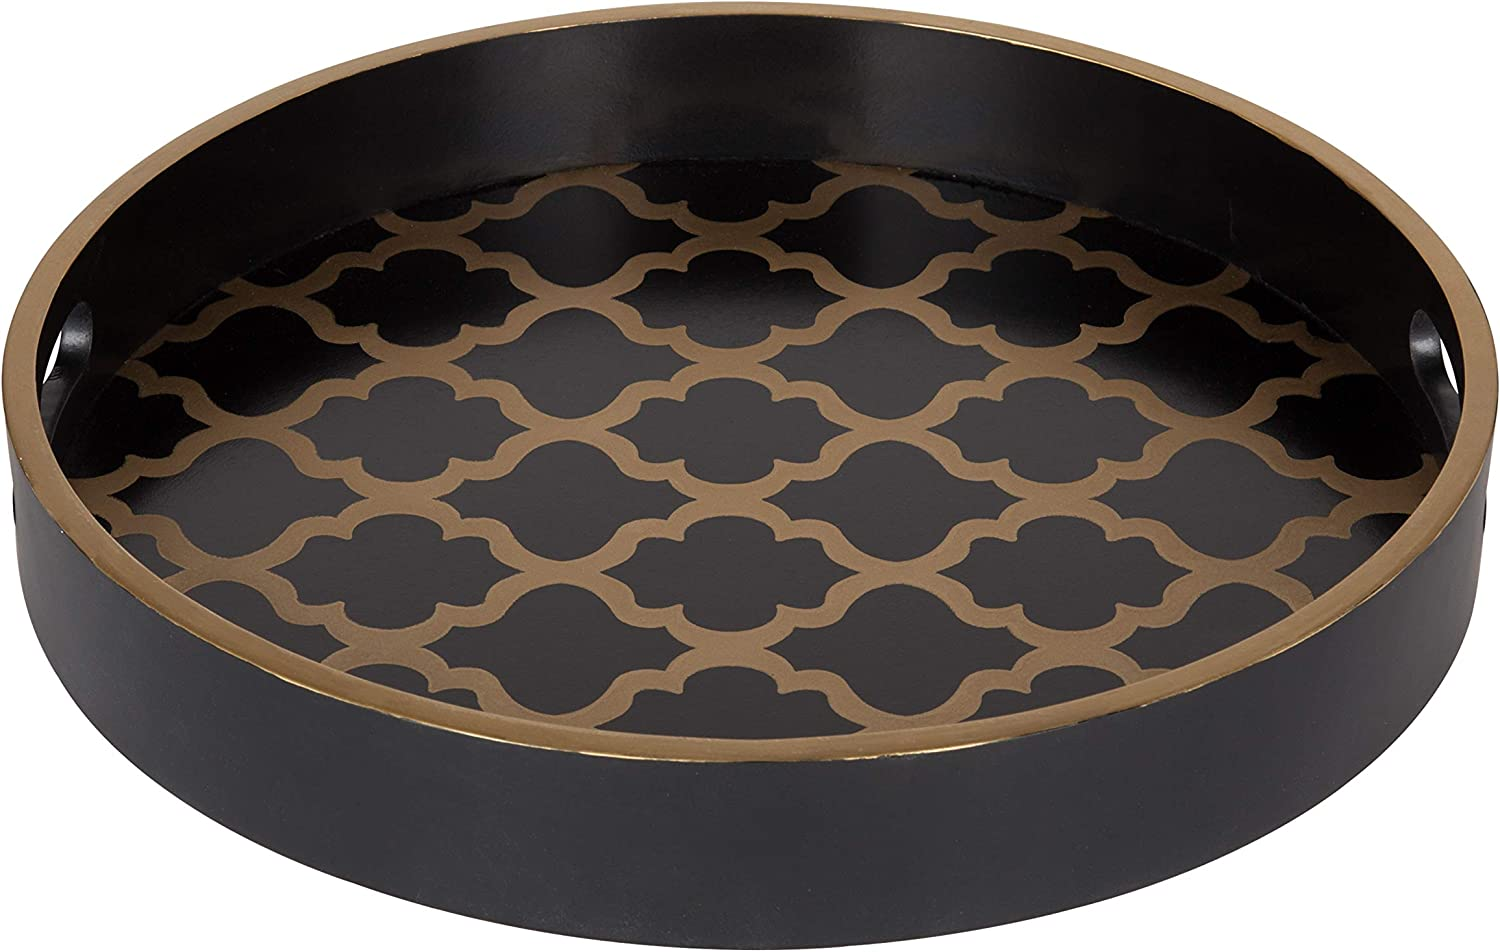 Kate and Laurel Palm Nesting Round Wood Decorative Accent Trays Black and Gold